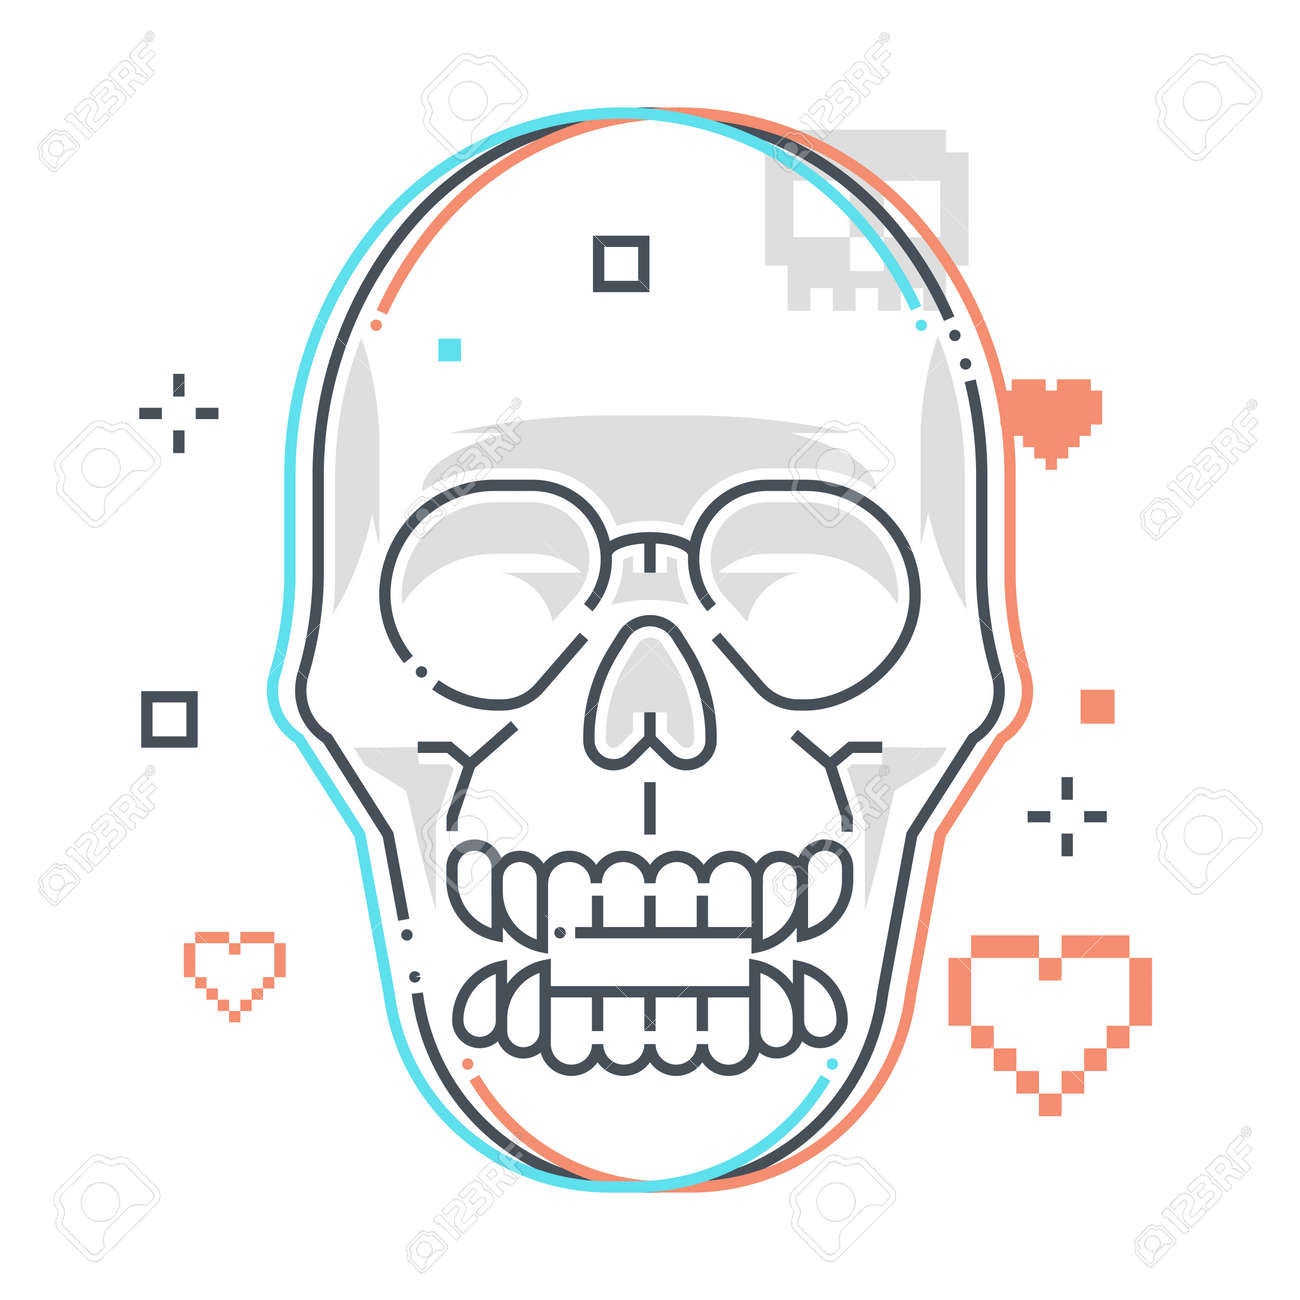 Skull related color line vector icon, illustration. The icon is about skeleton, game, monster, sprite, character, game over. The composition is infinitely scalable. - 163698365